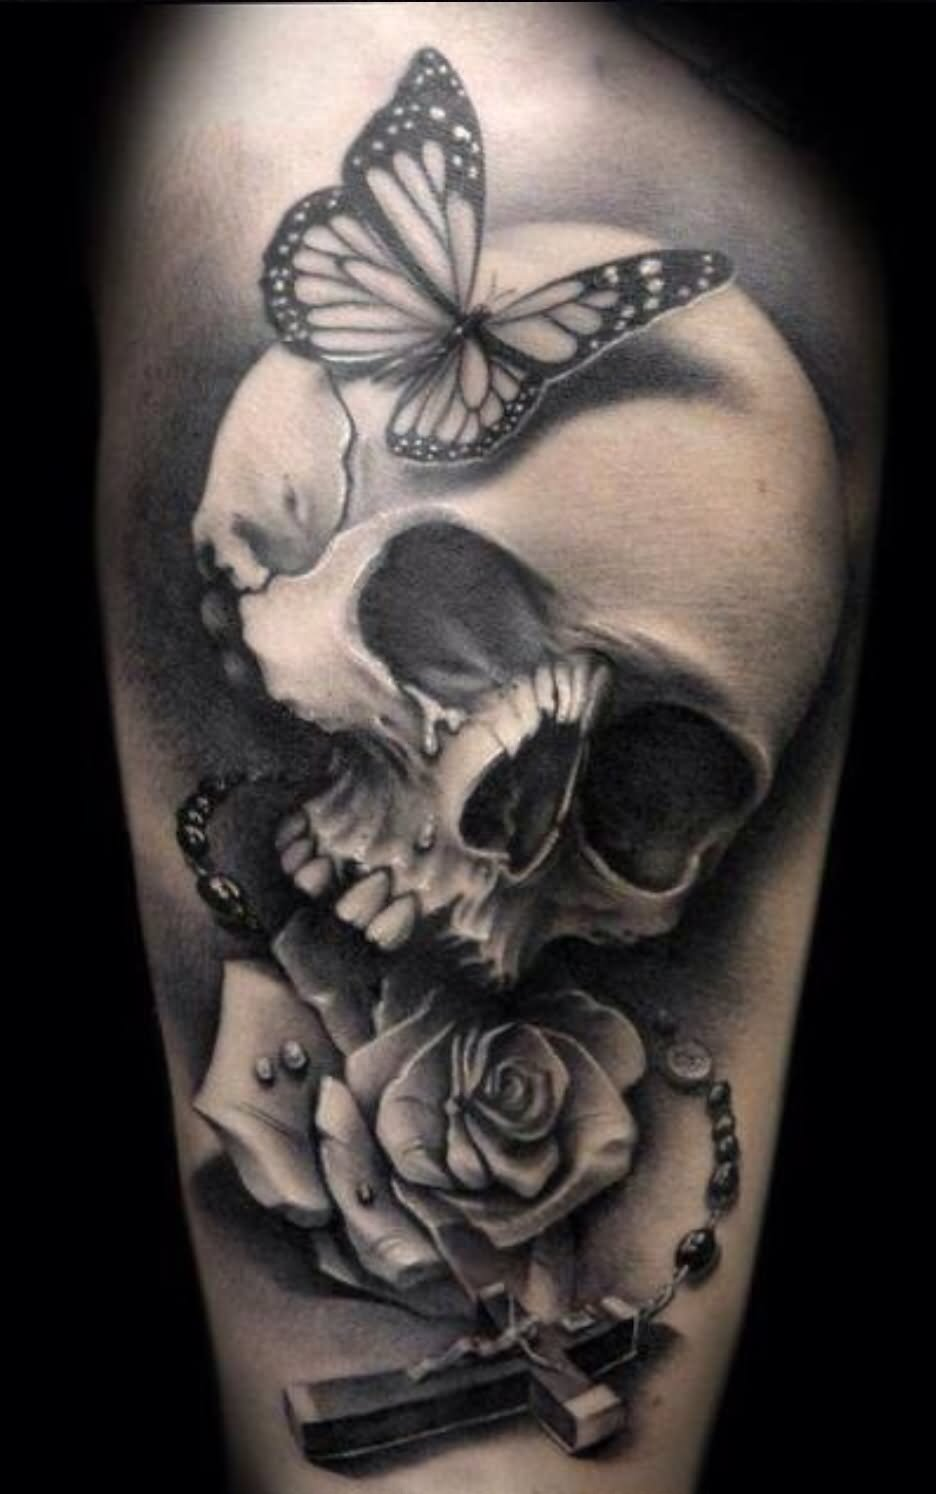 Grey Ink Gothic Skull Butterfly And Rose Tattoo On Thigh